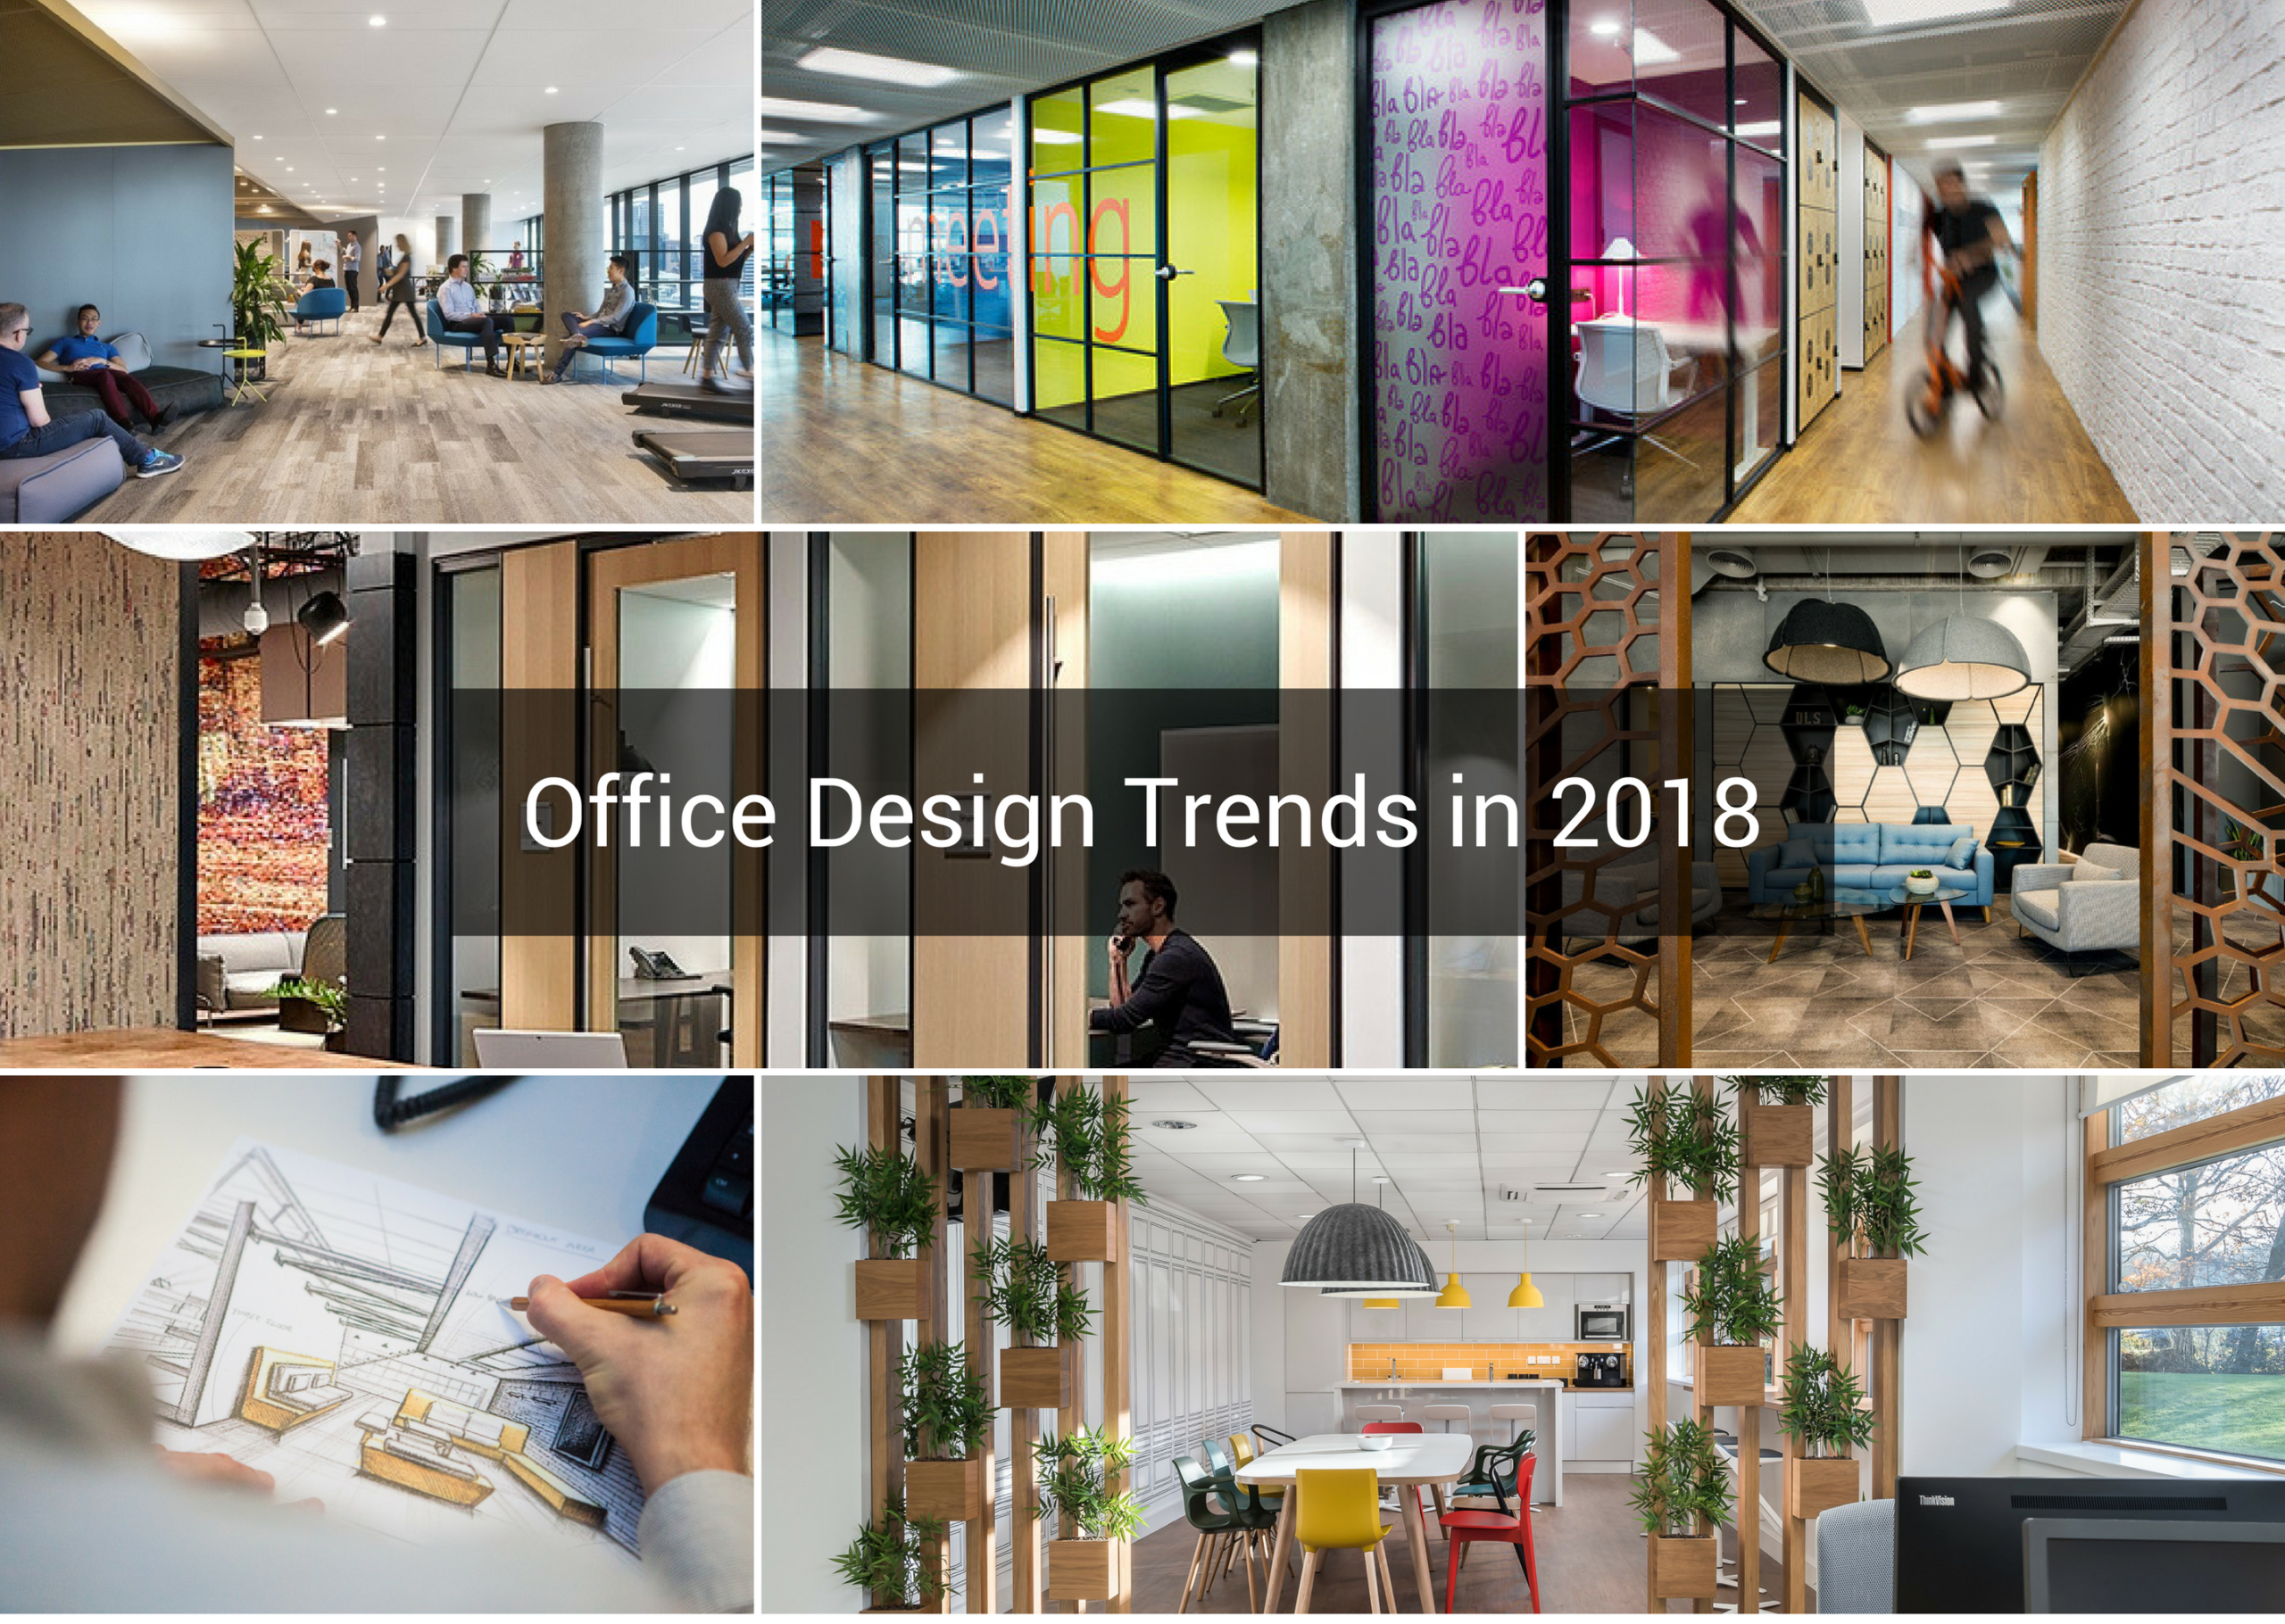 Office design trends to watch out for in 2018 k2 space for Office design 2018